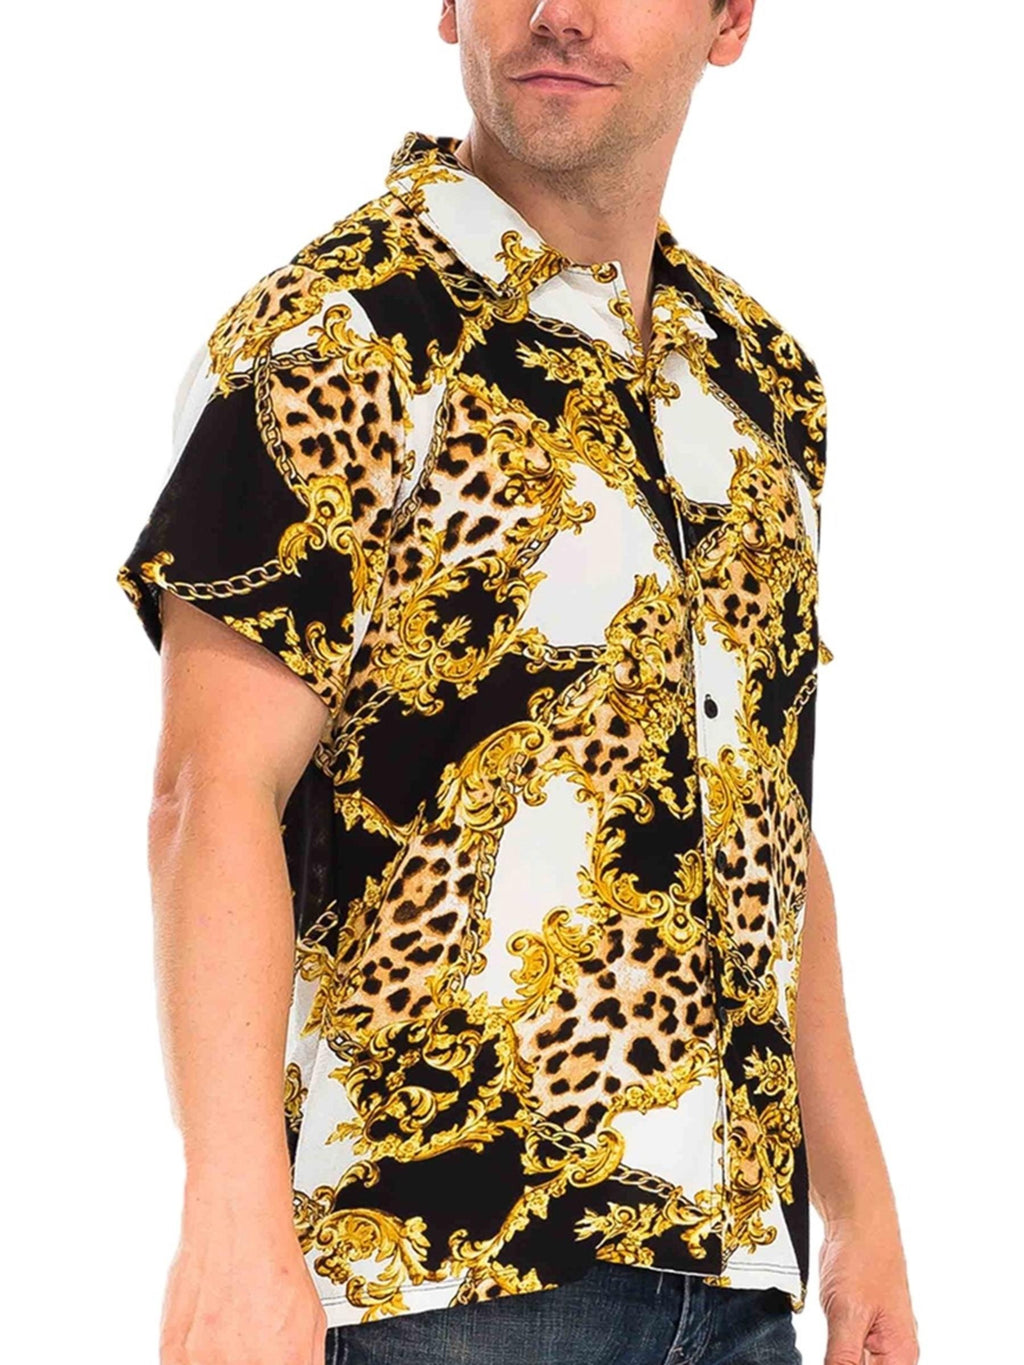 Gold Leaf Shirt Sleeve Shirt - Black/Yellow Print